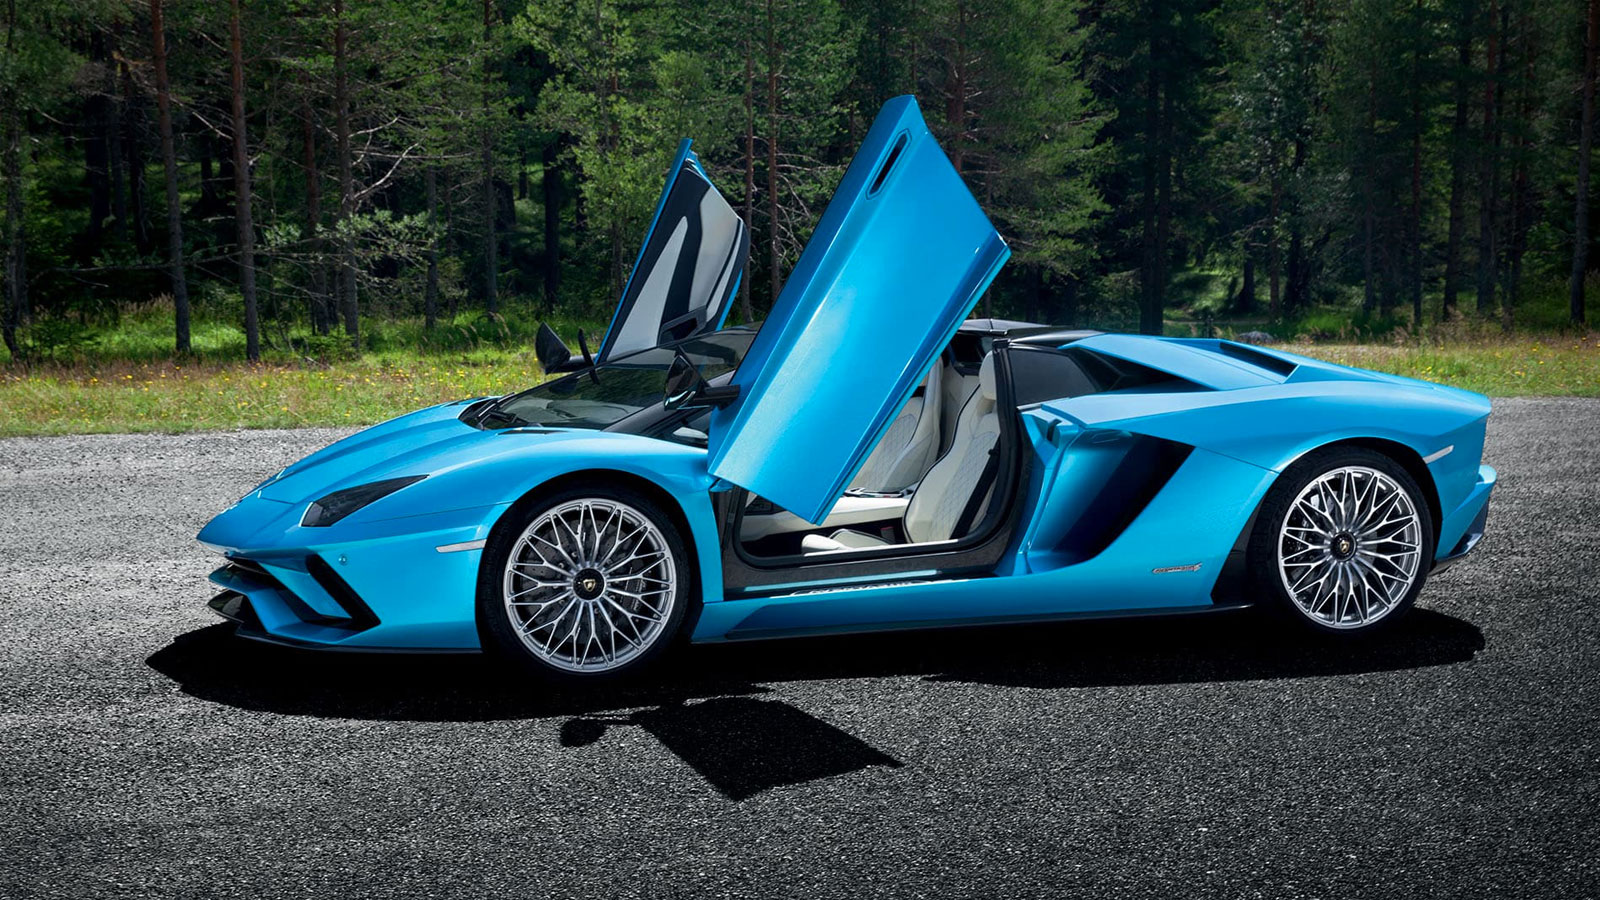 Lamborghini Aventador S Roadster - The Open Top Icon image 4